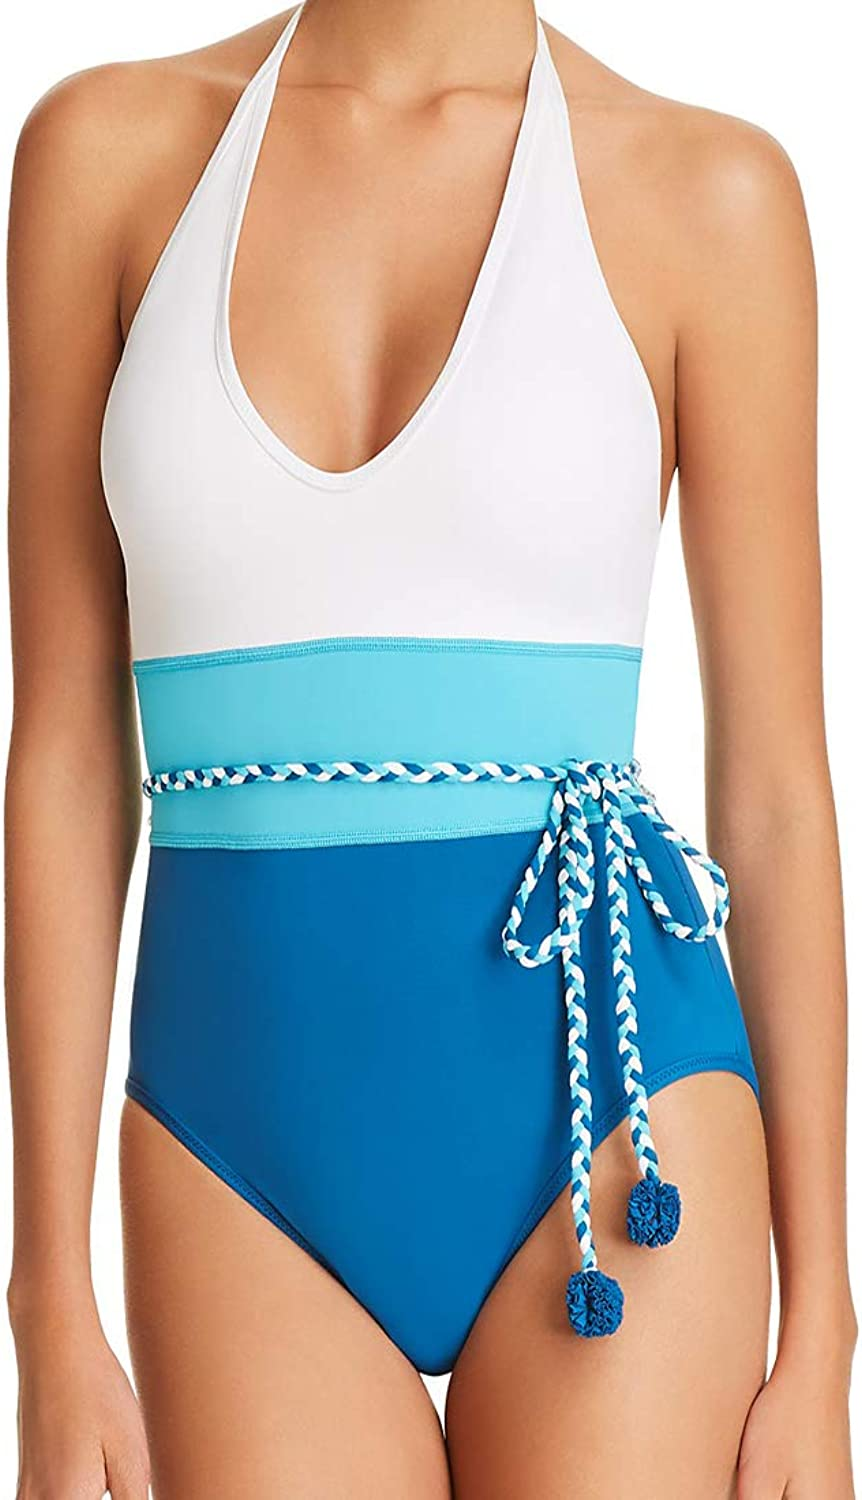 Vince Camuto One Piece Swimsuit Plunge Halter colorblock Belted Tassel Maillot White bluee 4